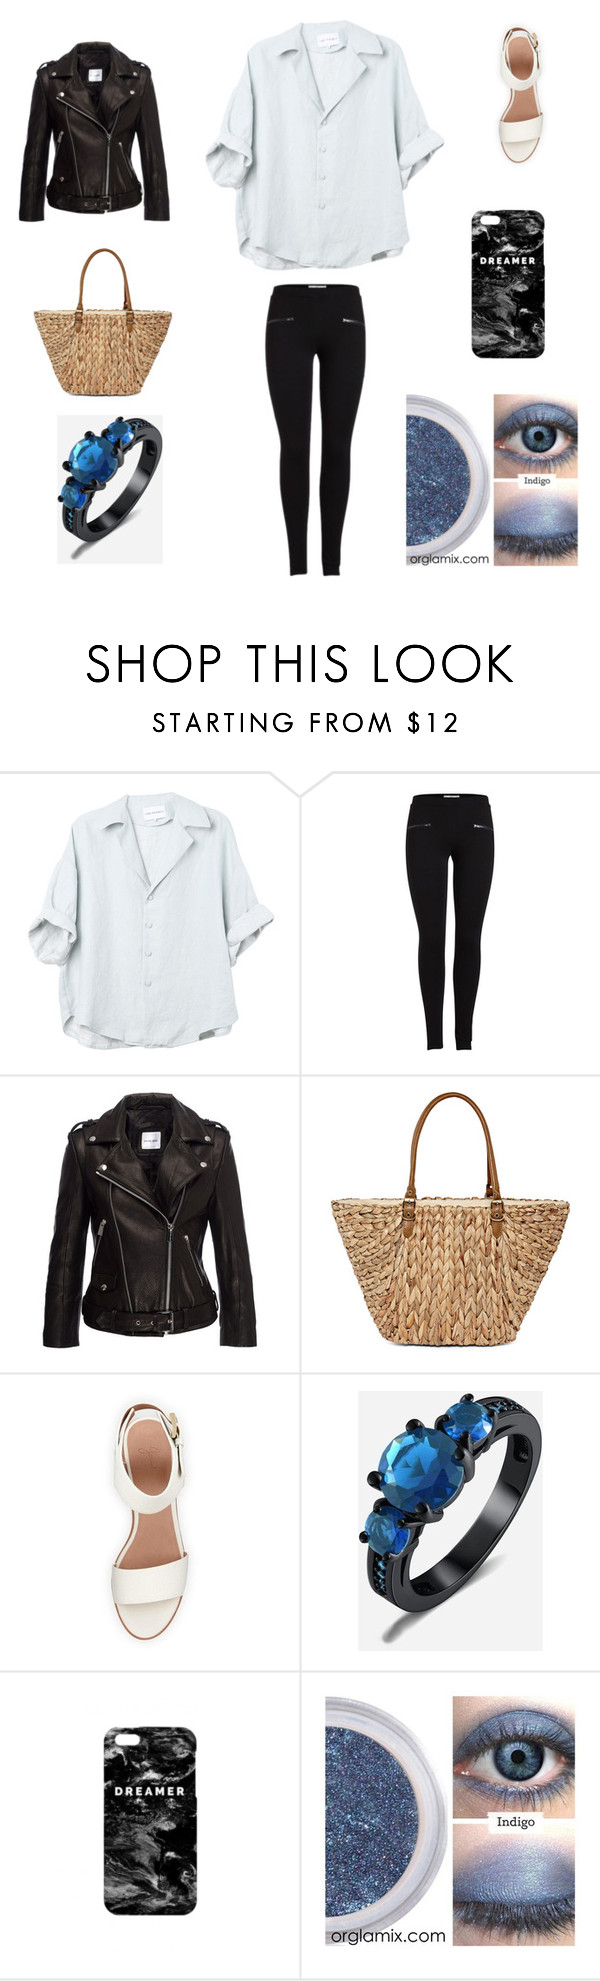 """Sin título #1155"" by bravotamara on Polyvore featuring moda, Anine Bing, Straw Studios, BEA y Mr. Gugu & Miss Go"